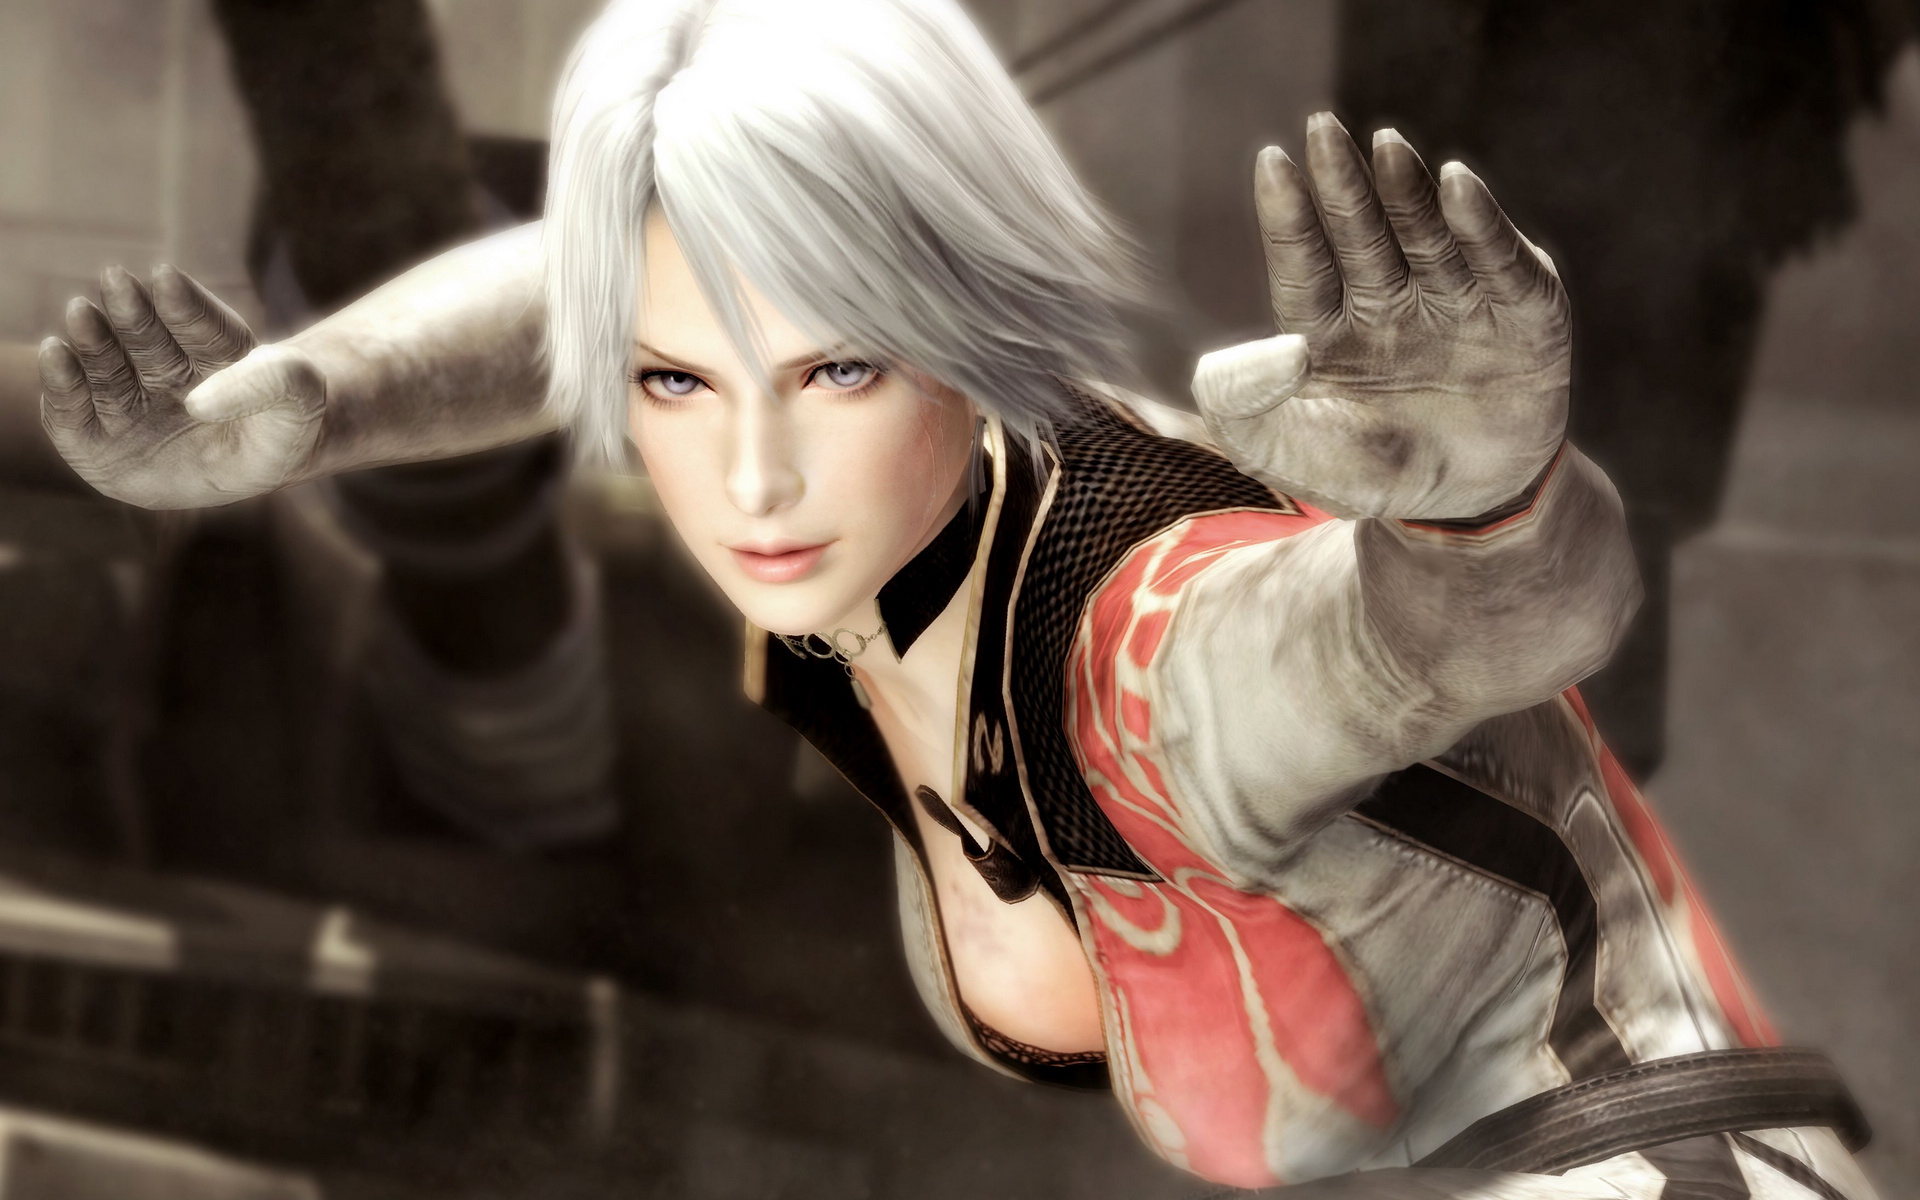 Tag Dead or Alive HD Wallpapers exquisite Latest Updates Pictures 1920x1200